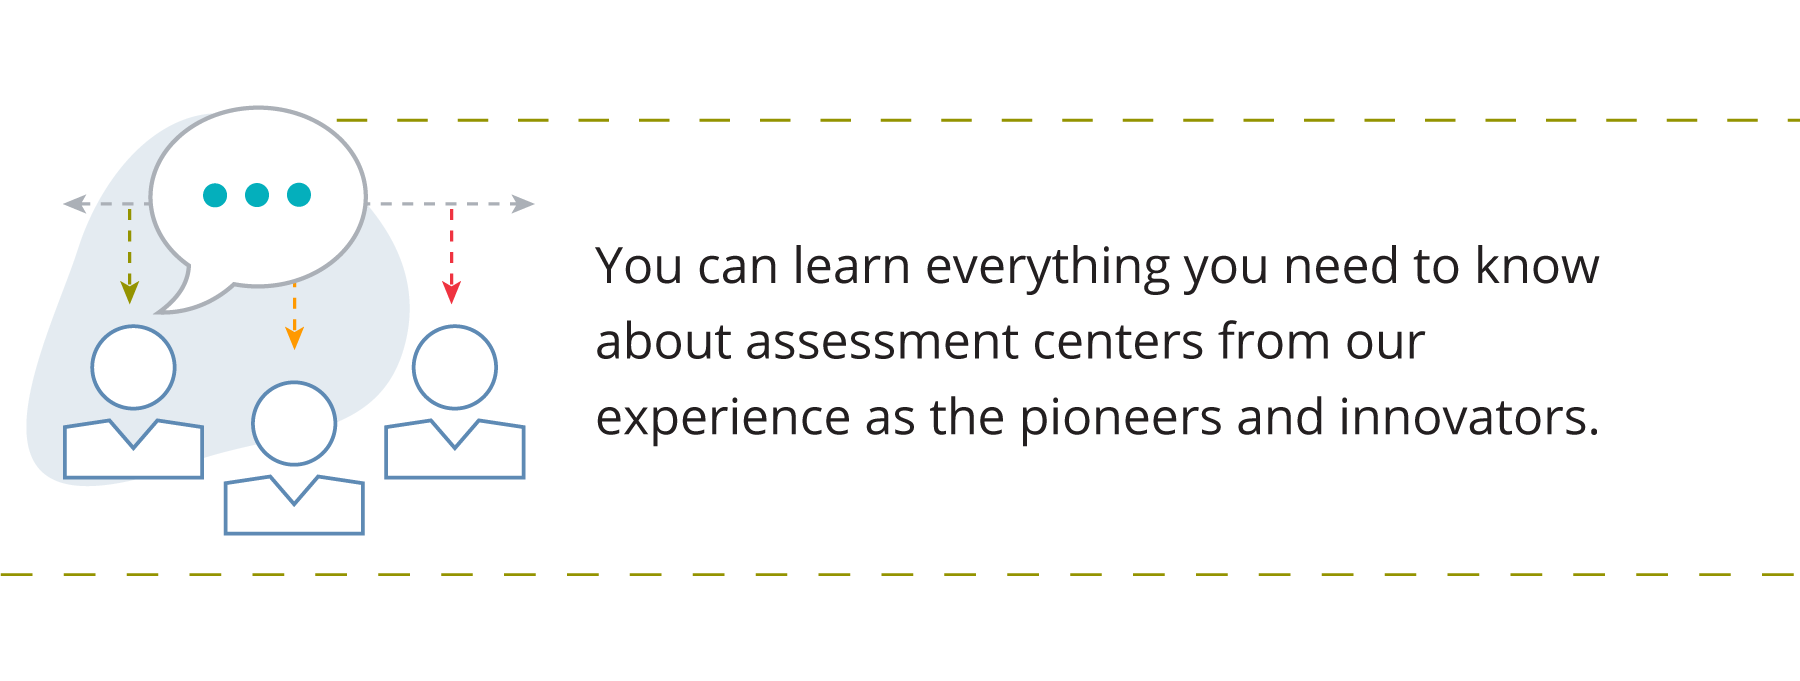 Graphic showing three people, demonstrating experience in an assessment center. Accompanied by text that says